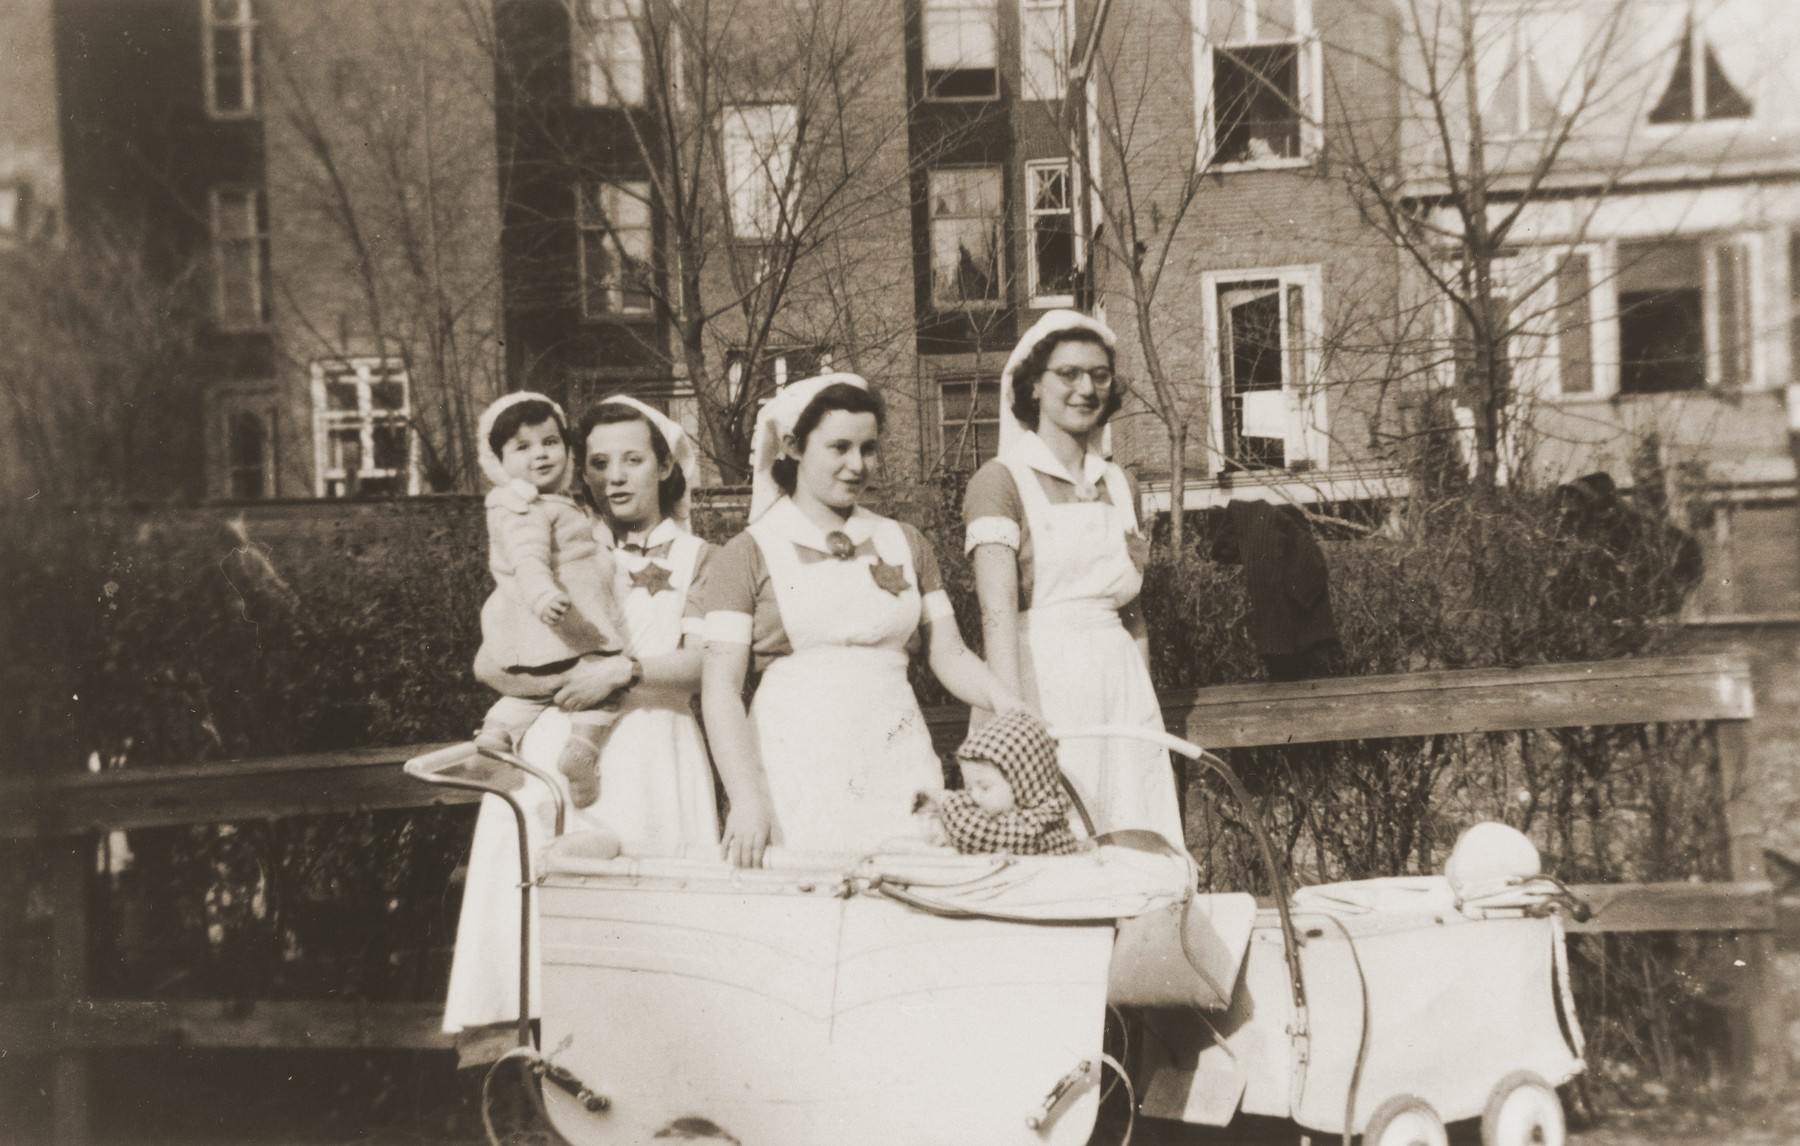 Three childcare workers wearing Jewish badges take three young children for a stroll in the Amsterdam Jewish quarter.  Pictured from right to left are childcare workers, Hilde Jacobsthal, Margot Herz and Margot Stern.